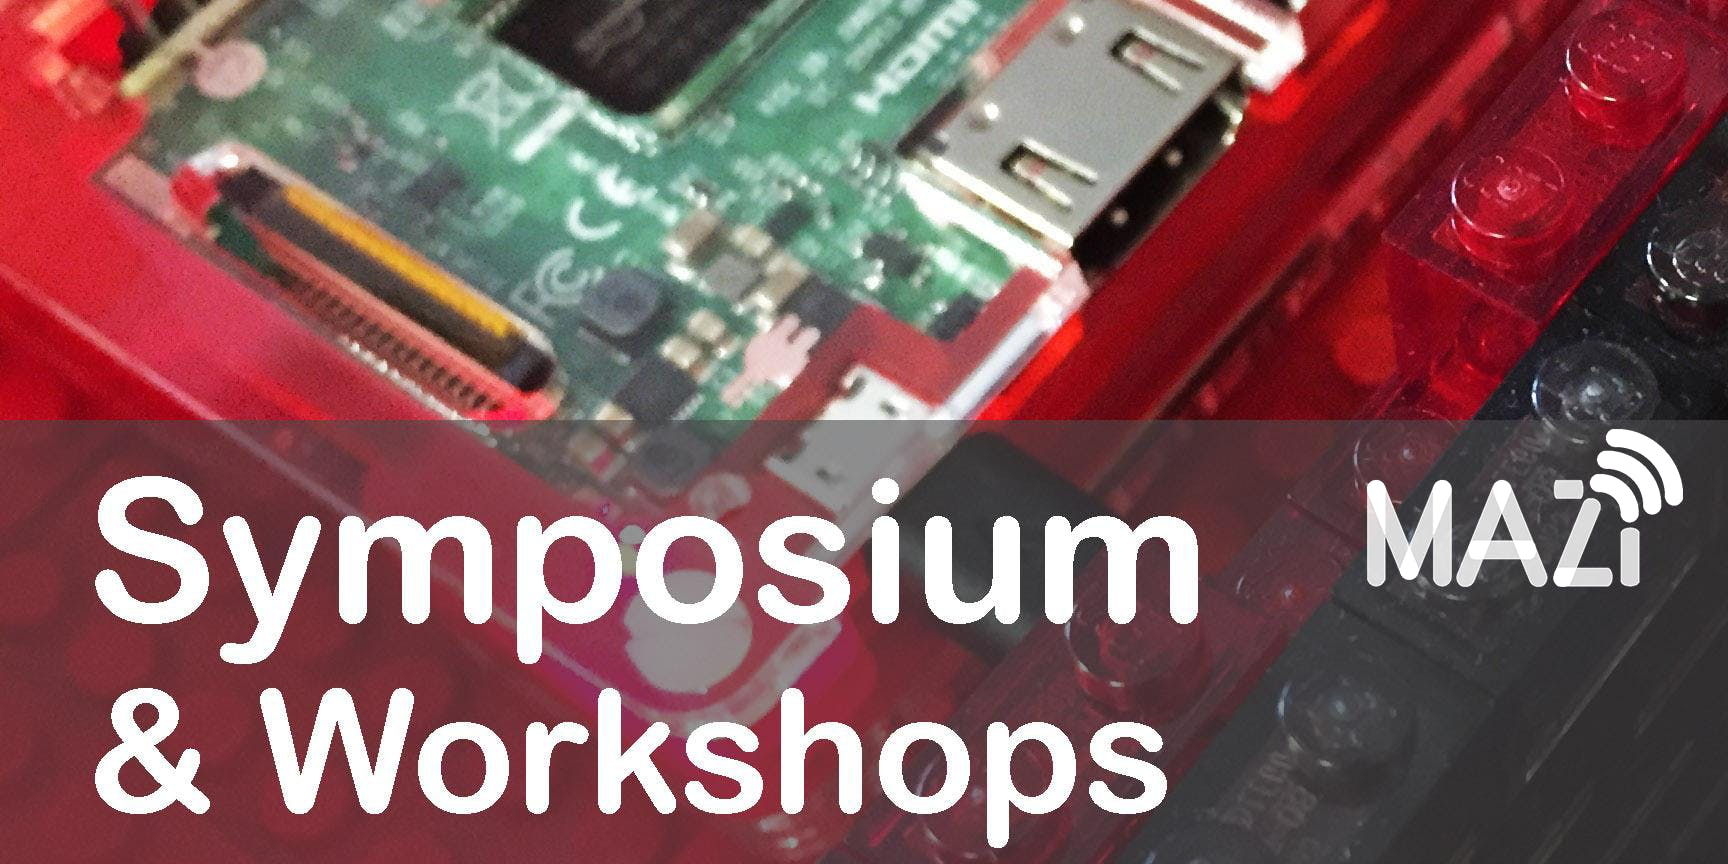 Workshop 2: Using the MAZI Toolkit with your